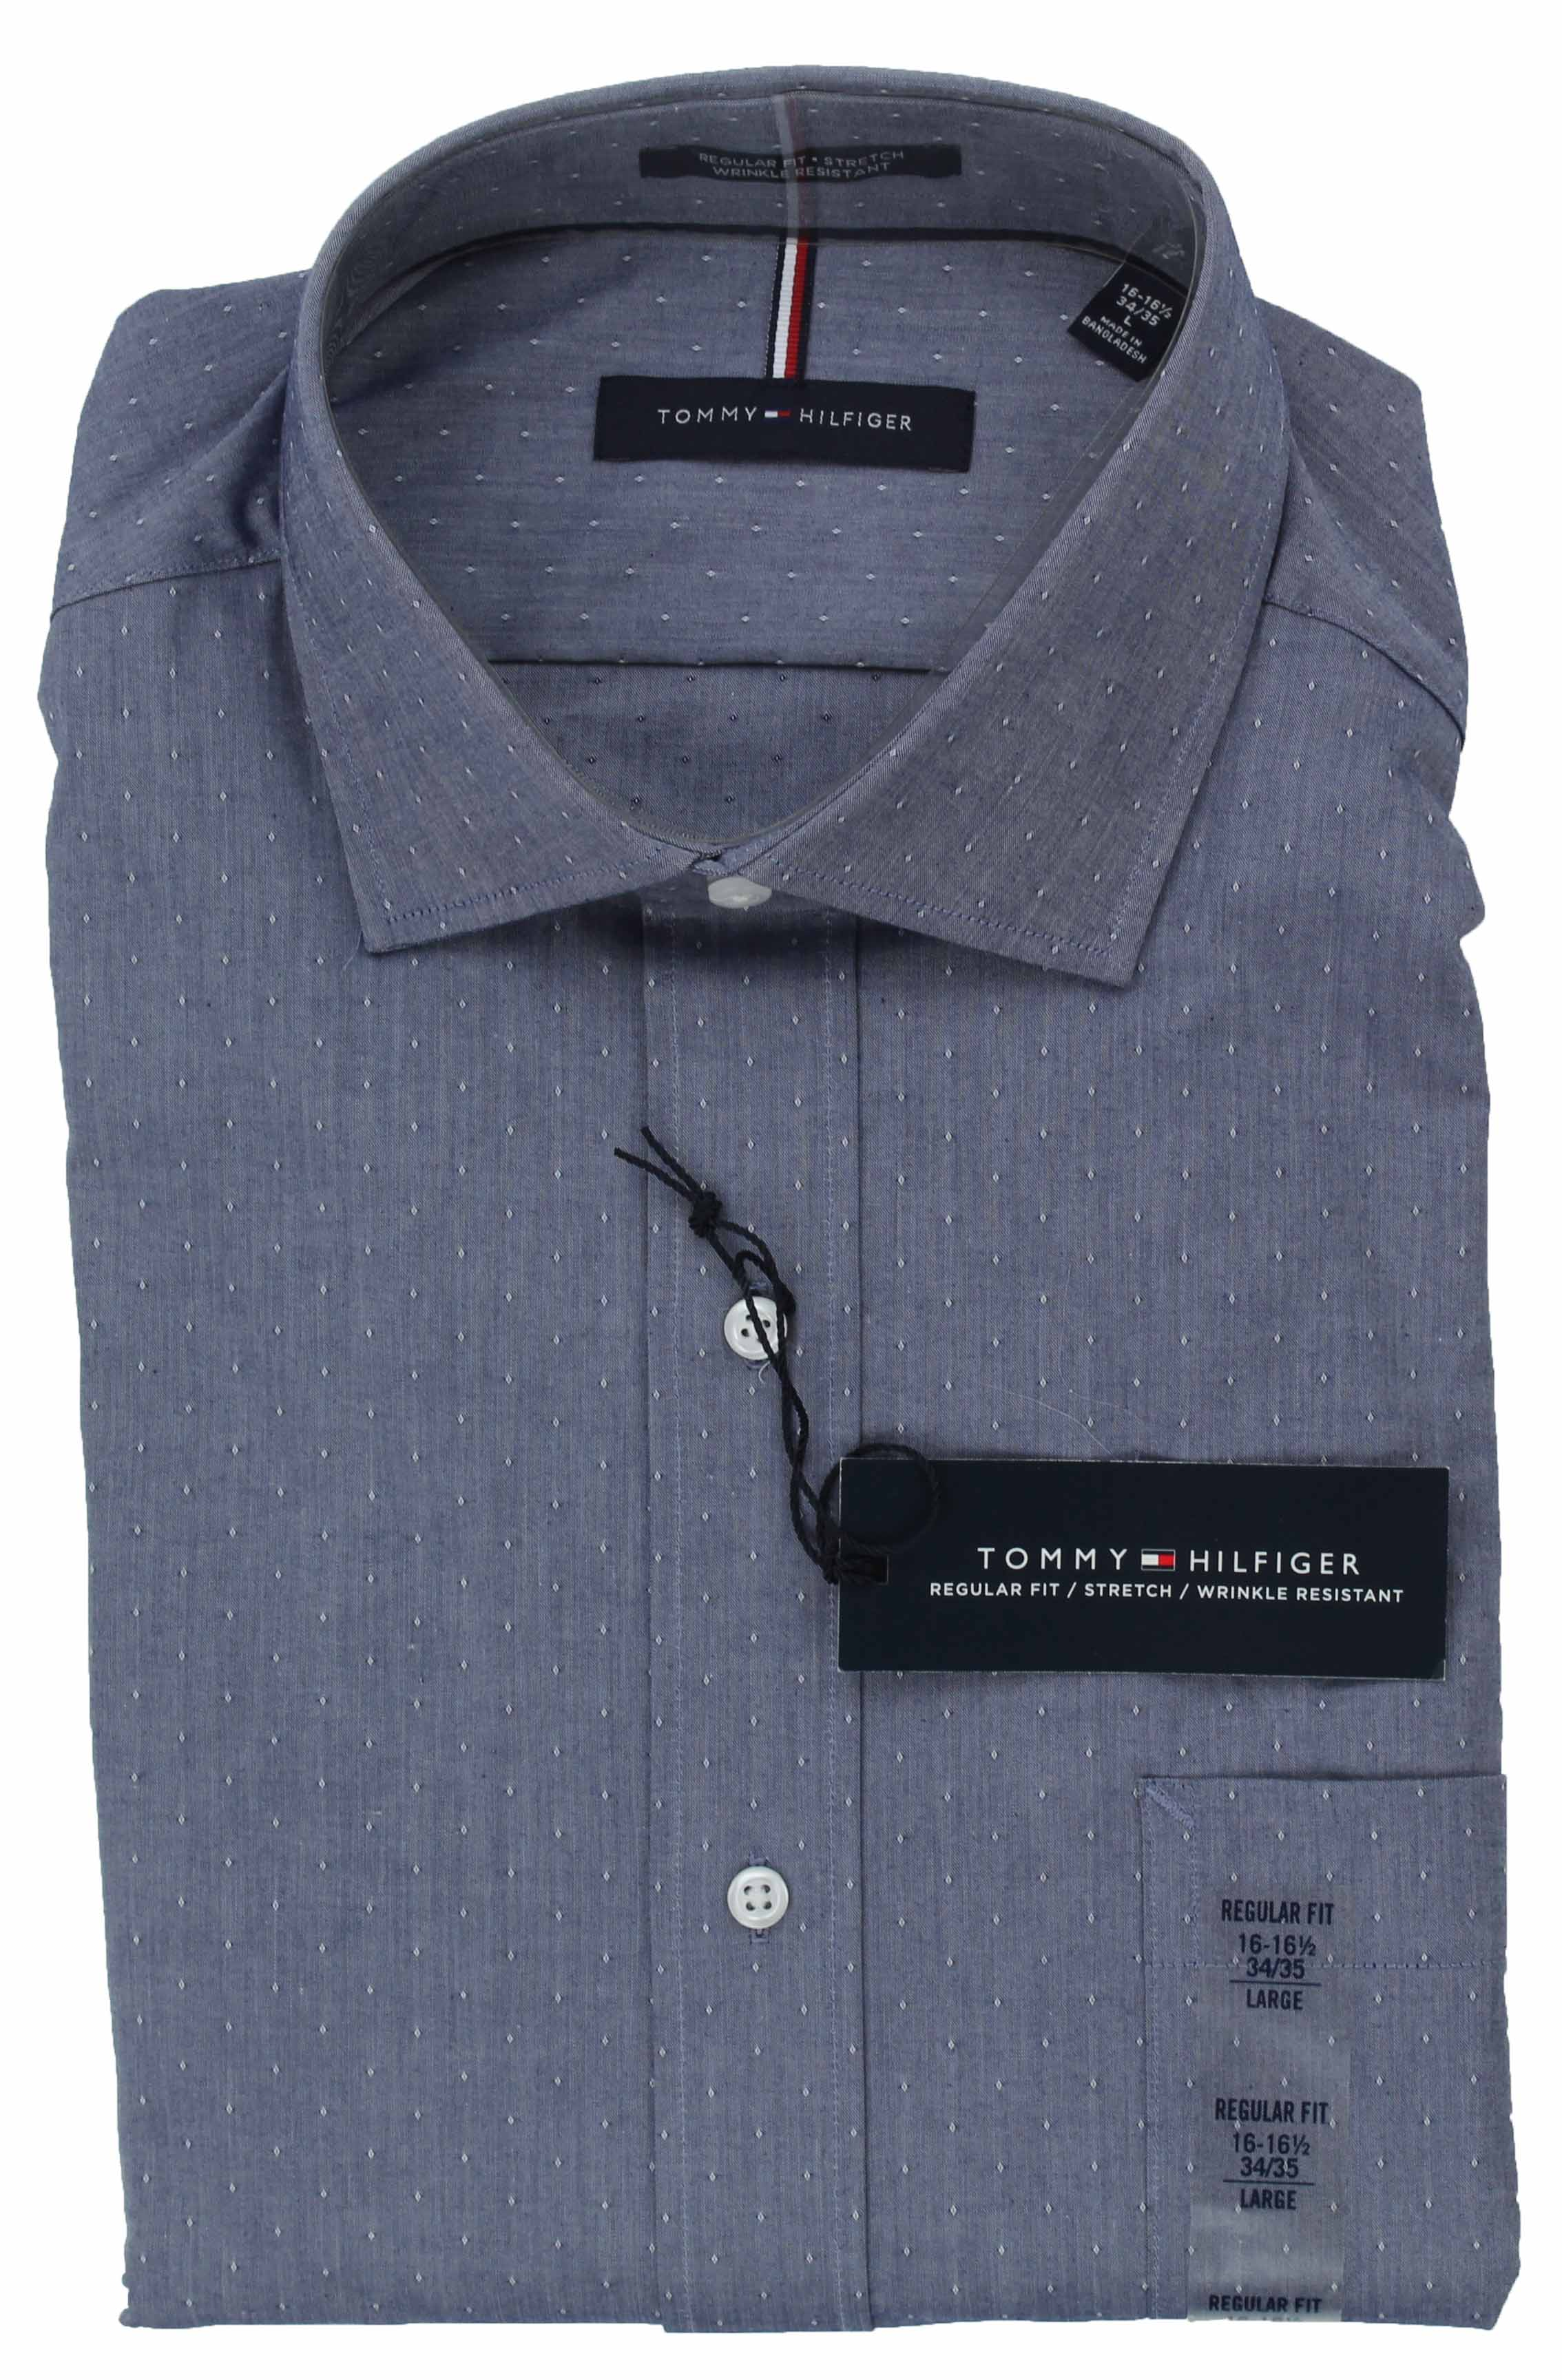 Tommy-Hilfiger-Mens-Long-Sleeve-Regular-Fit-Dress-Shirt miniature 29